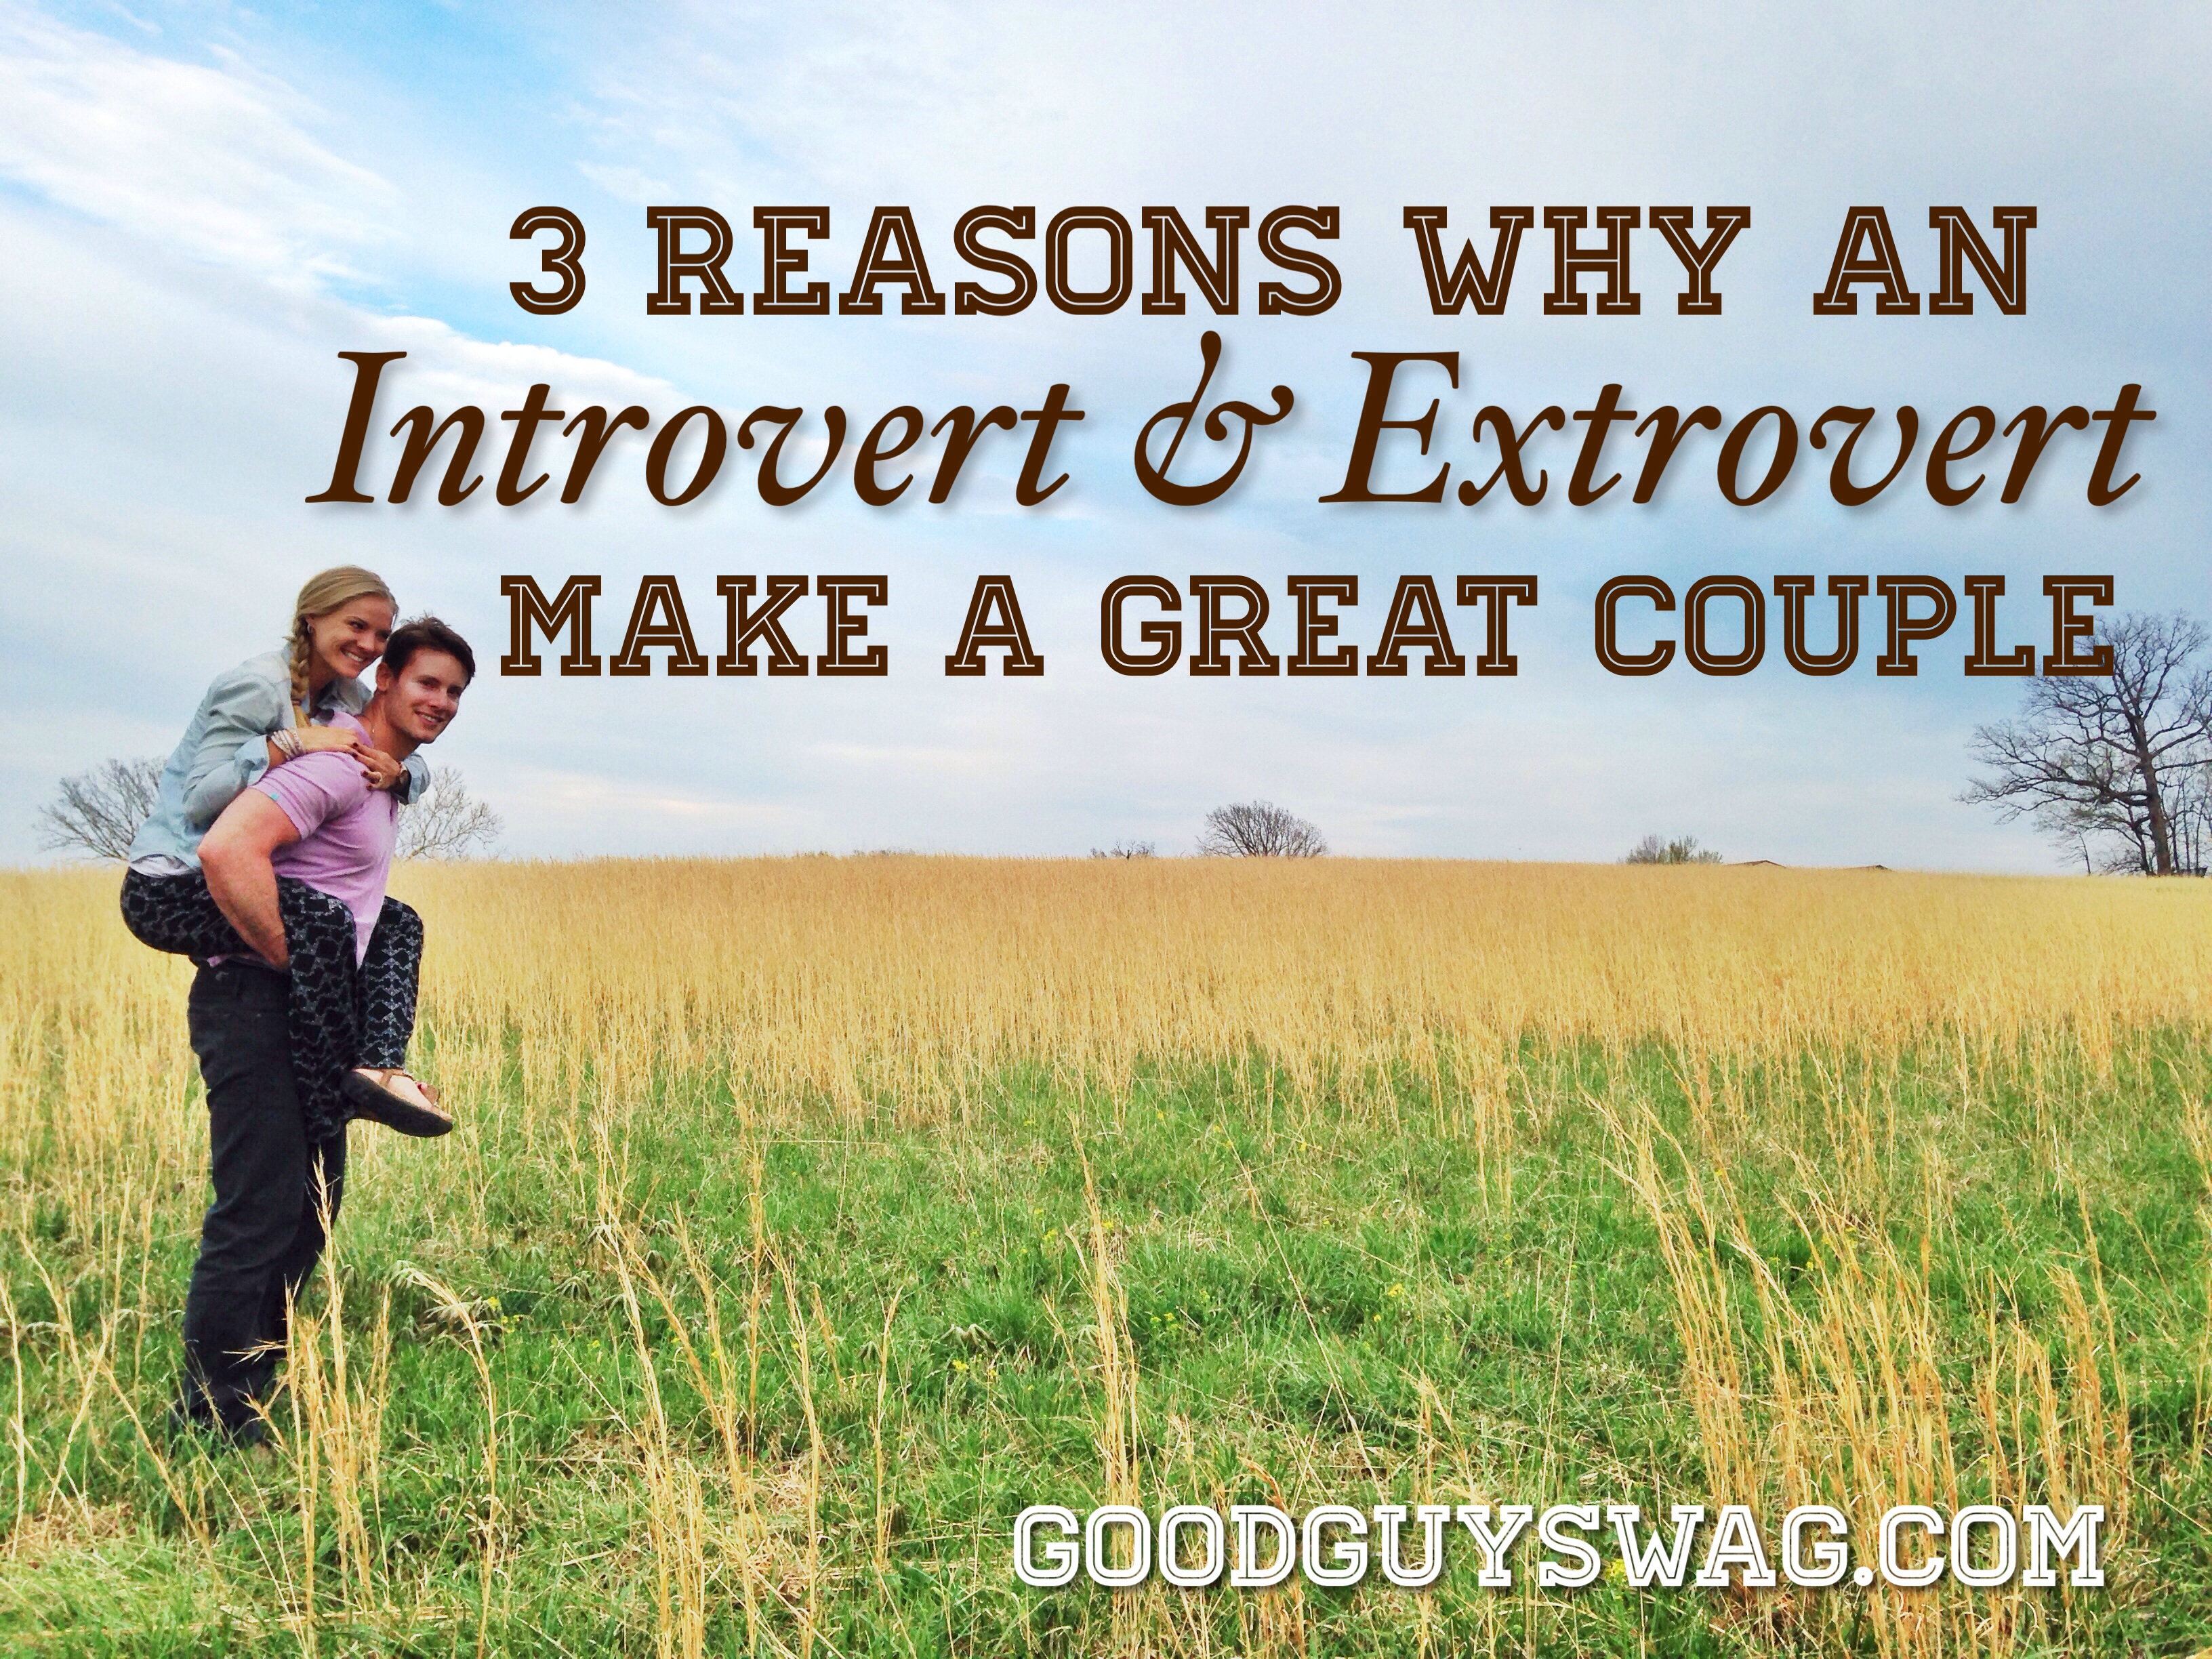 Extrovert introvert dating problems